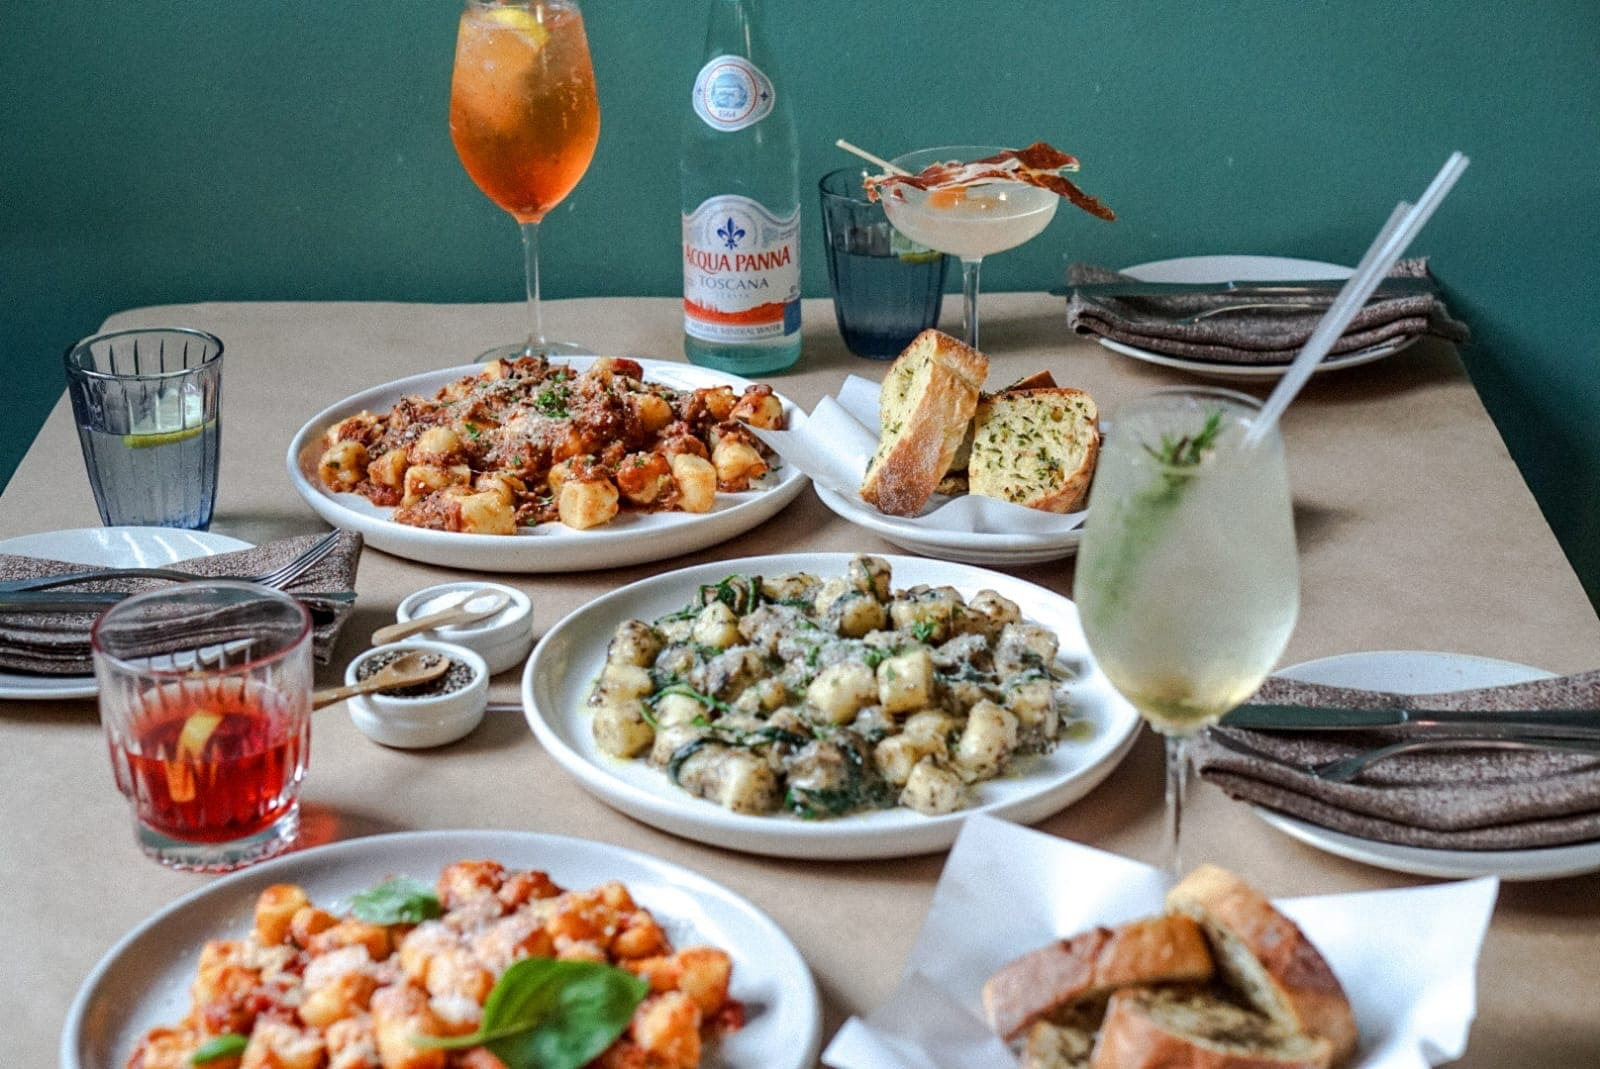 Get bottomless gnocchi and cocktails at Mamma's Boy Trattoria